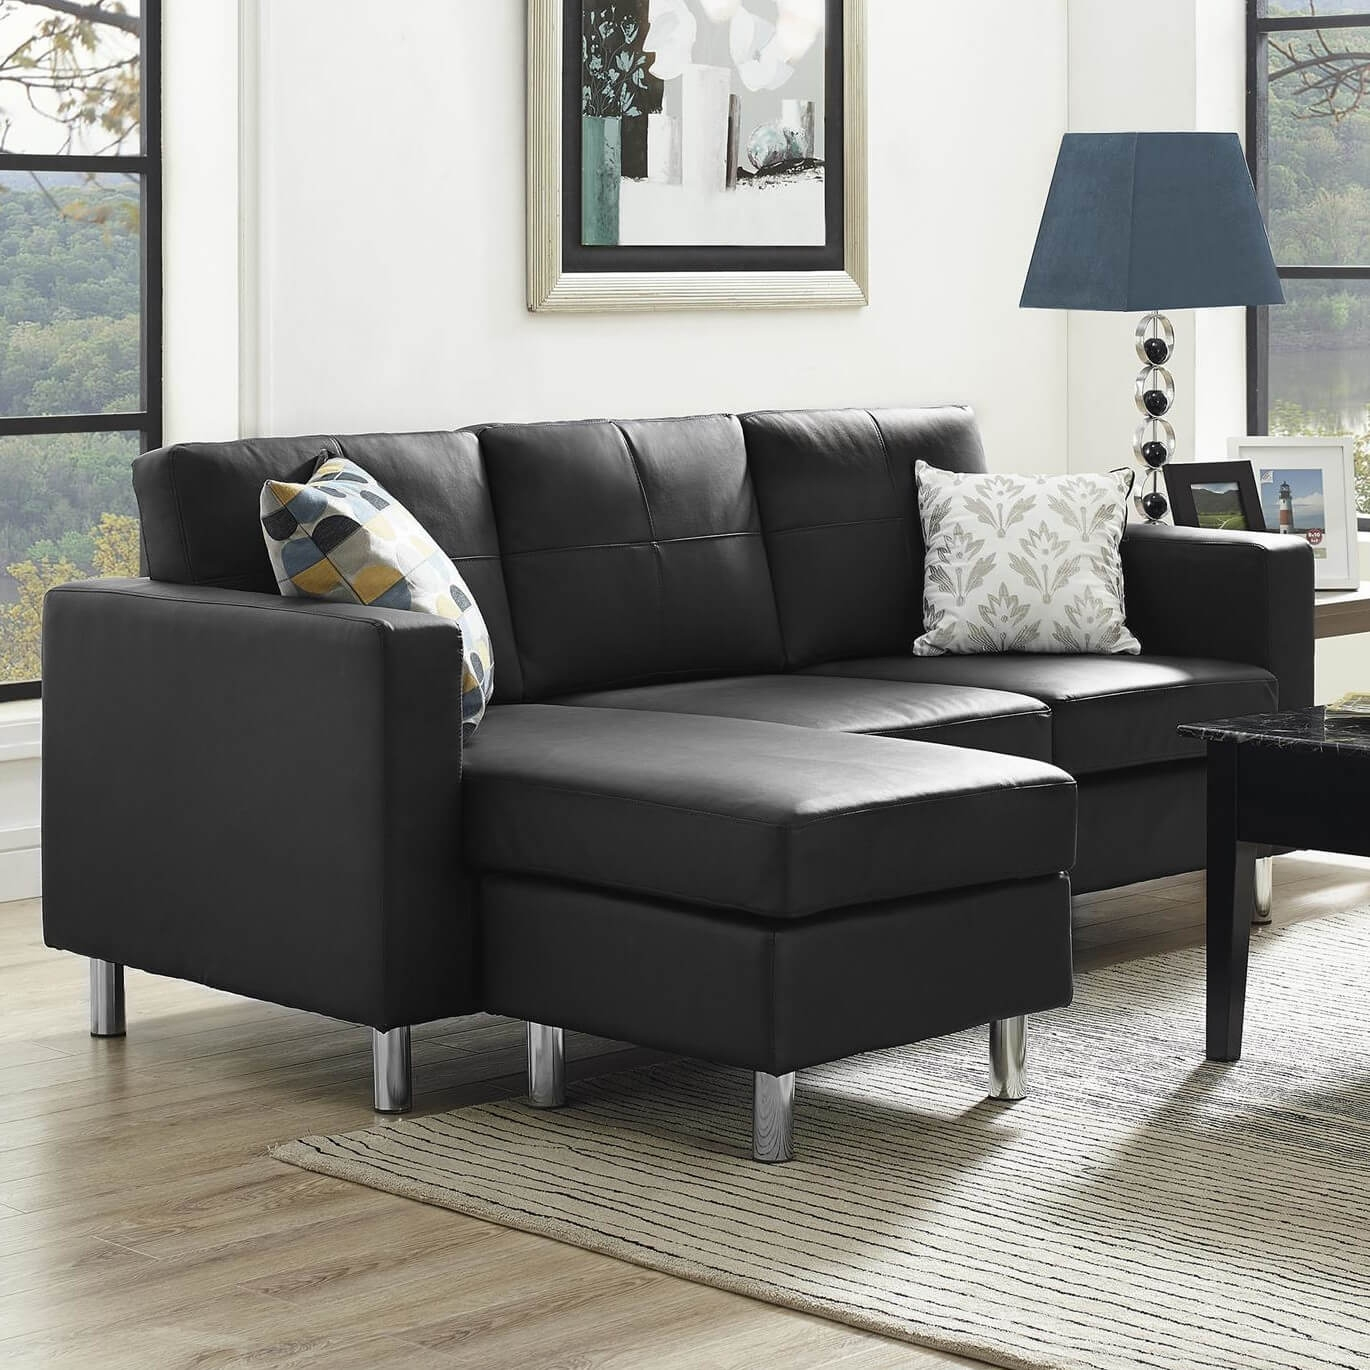 13 Sectional Sofas Under 500 Several Styles In Black Sectional Sofa For Cheap (Image 1 of 15)